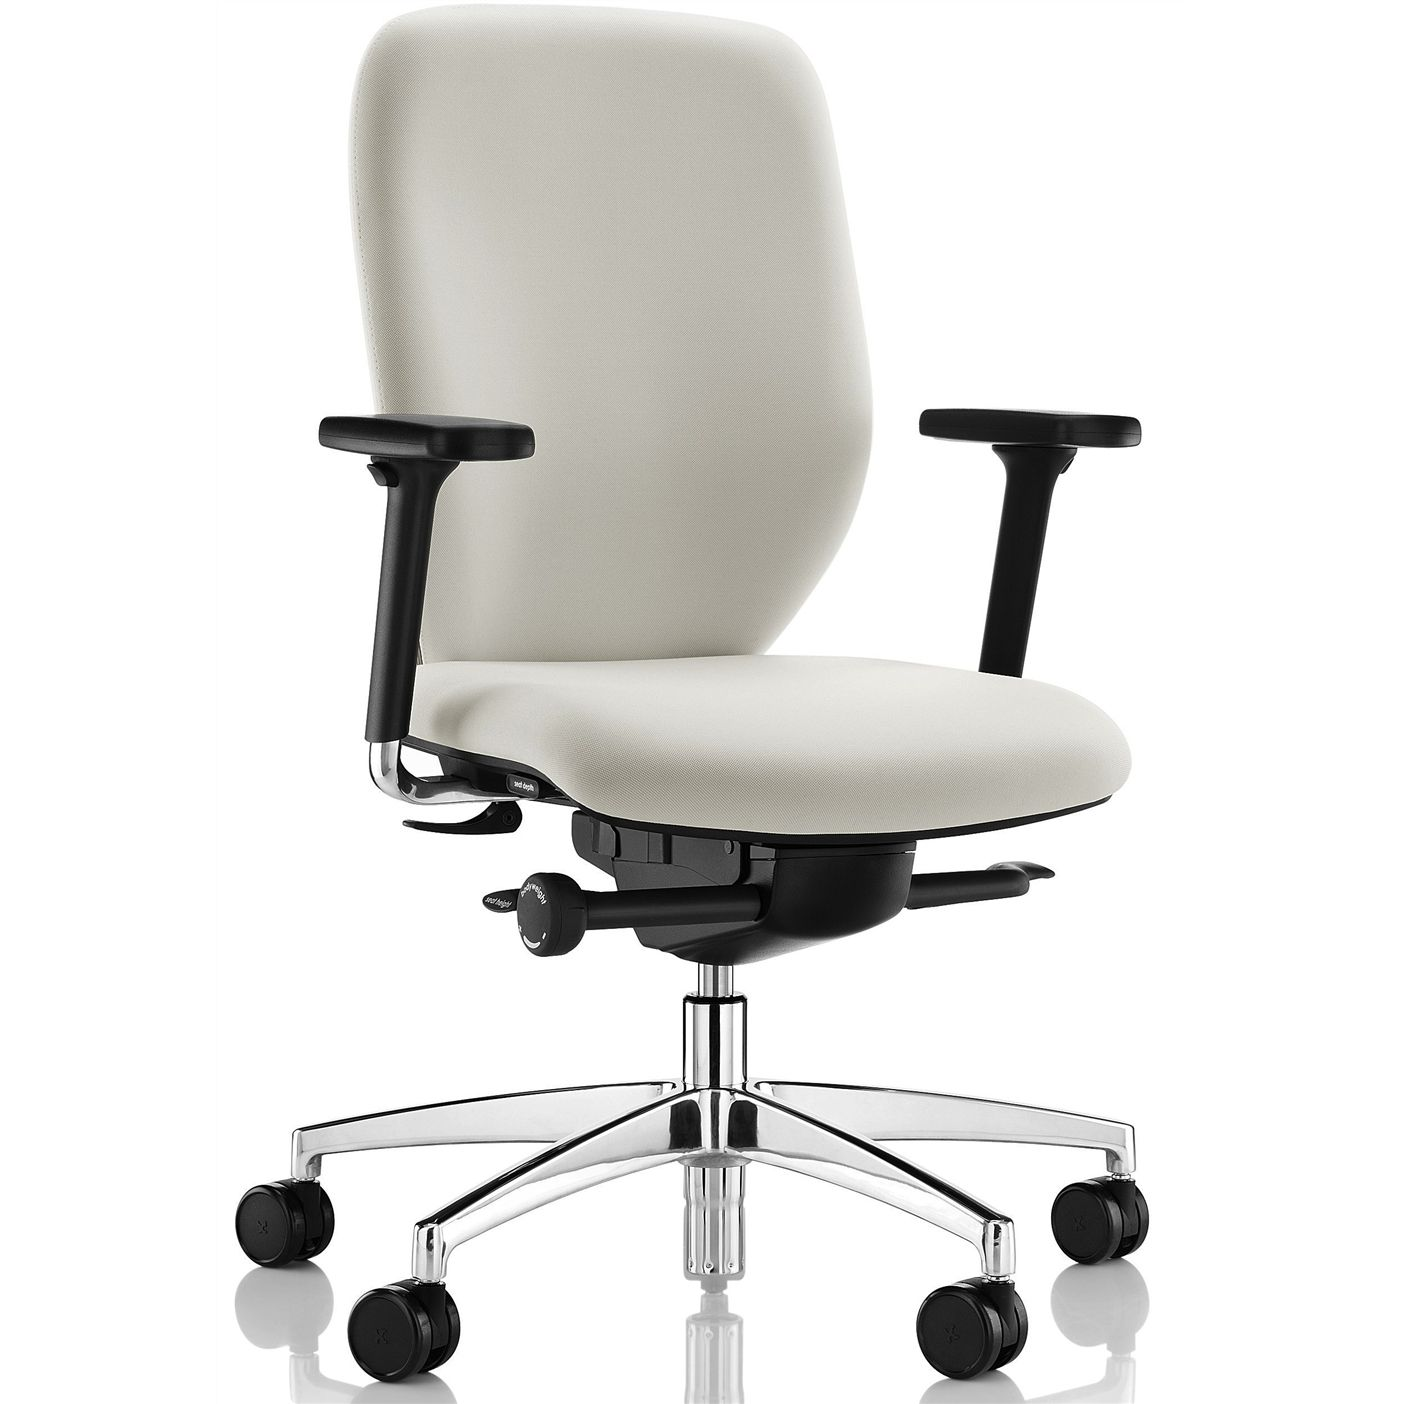 Boss Design Lily Office Chair Office chair, Chair, Task